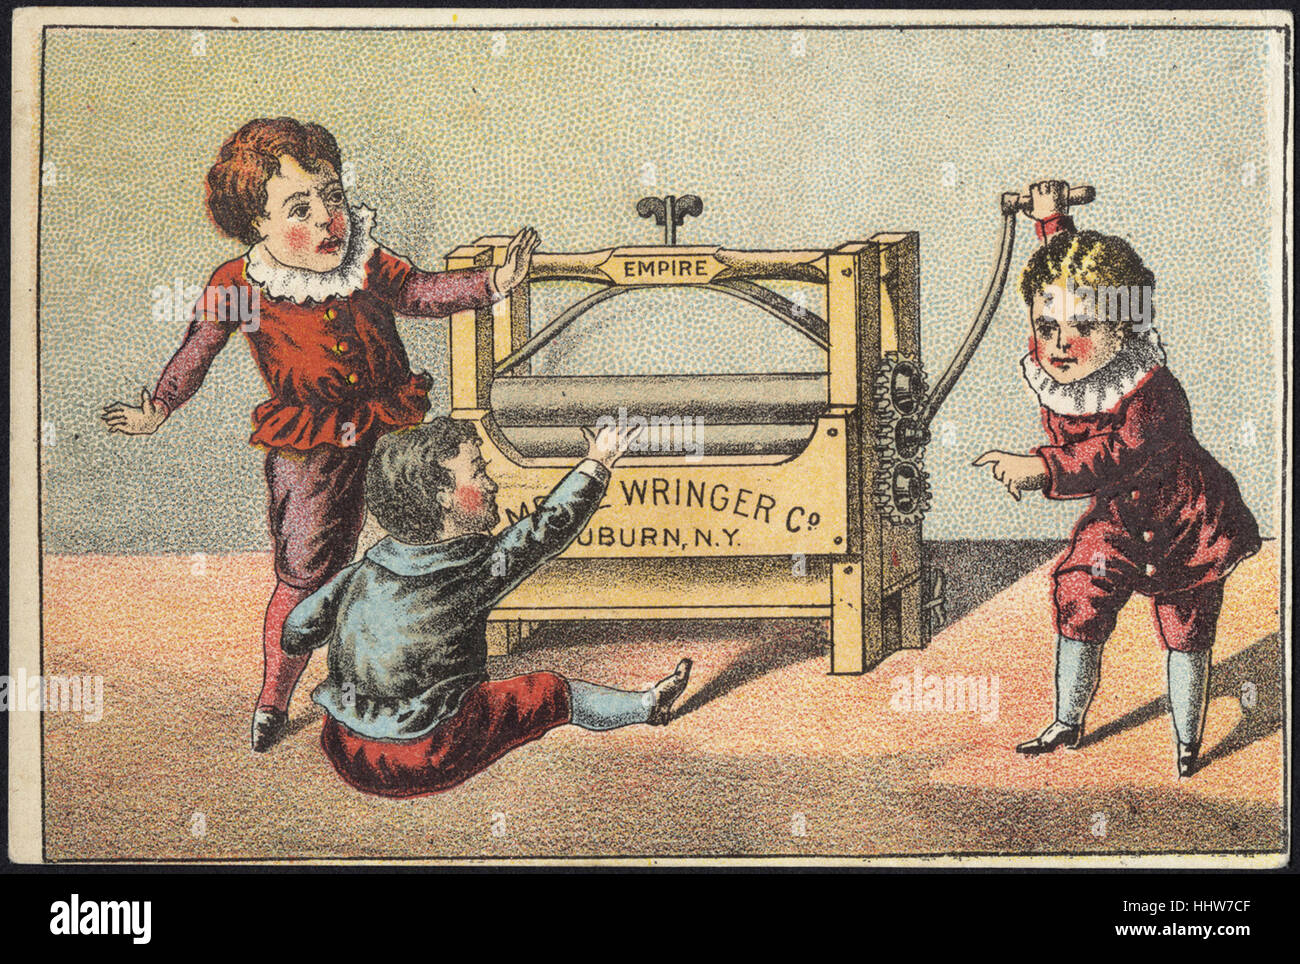 Empire Wringer Co., Auburn, N. Y. [front]  - Laundry Trade Cards - Stock Image